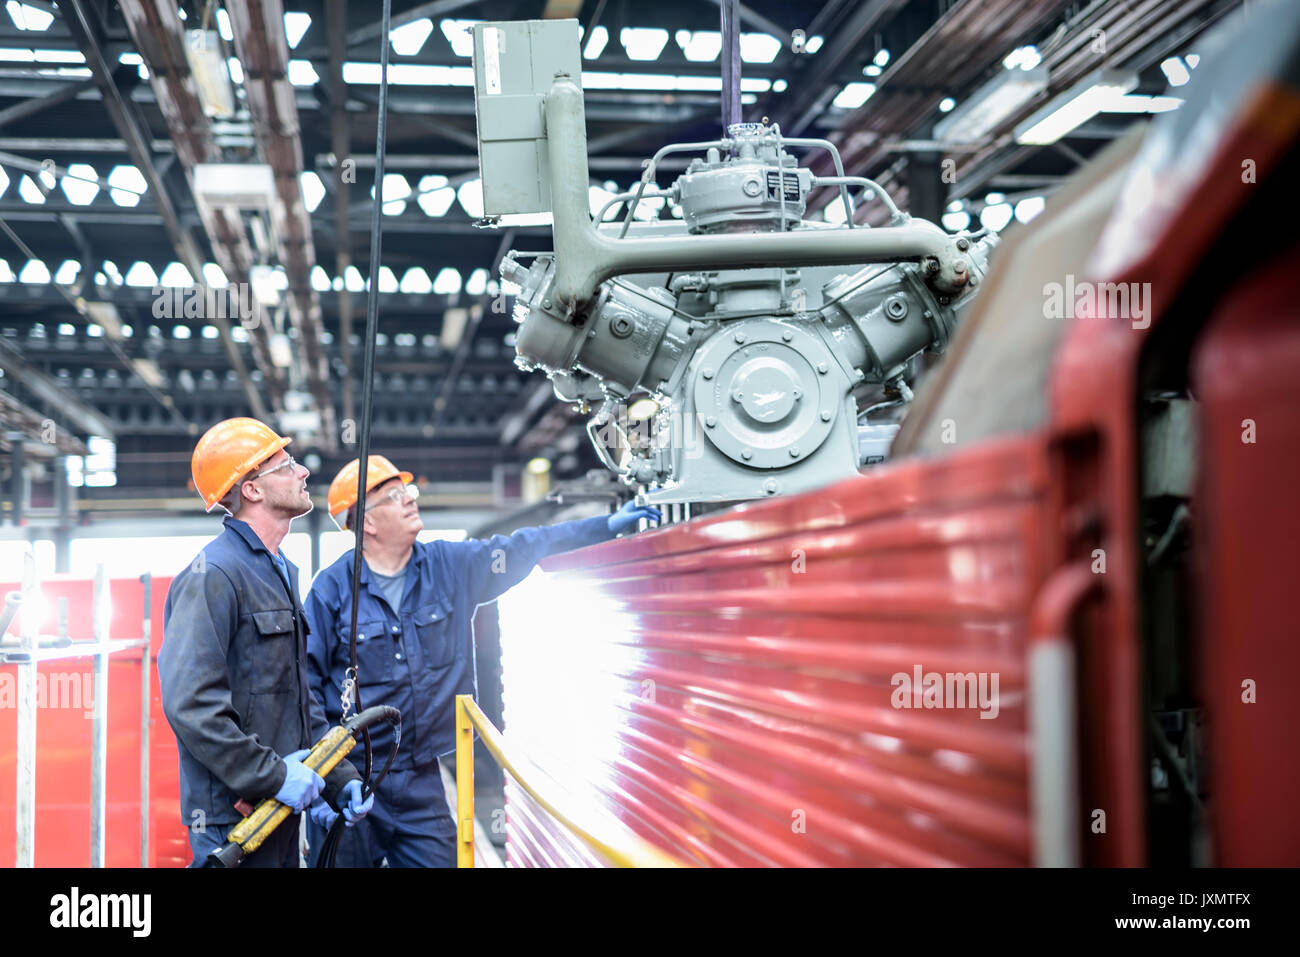 Locomotive engineers craning engine parts in train works Stock Photo